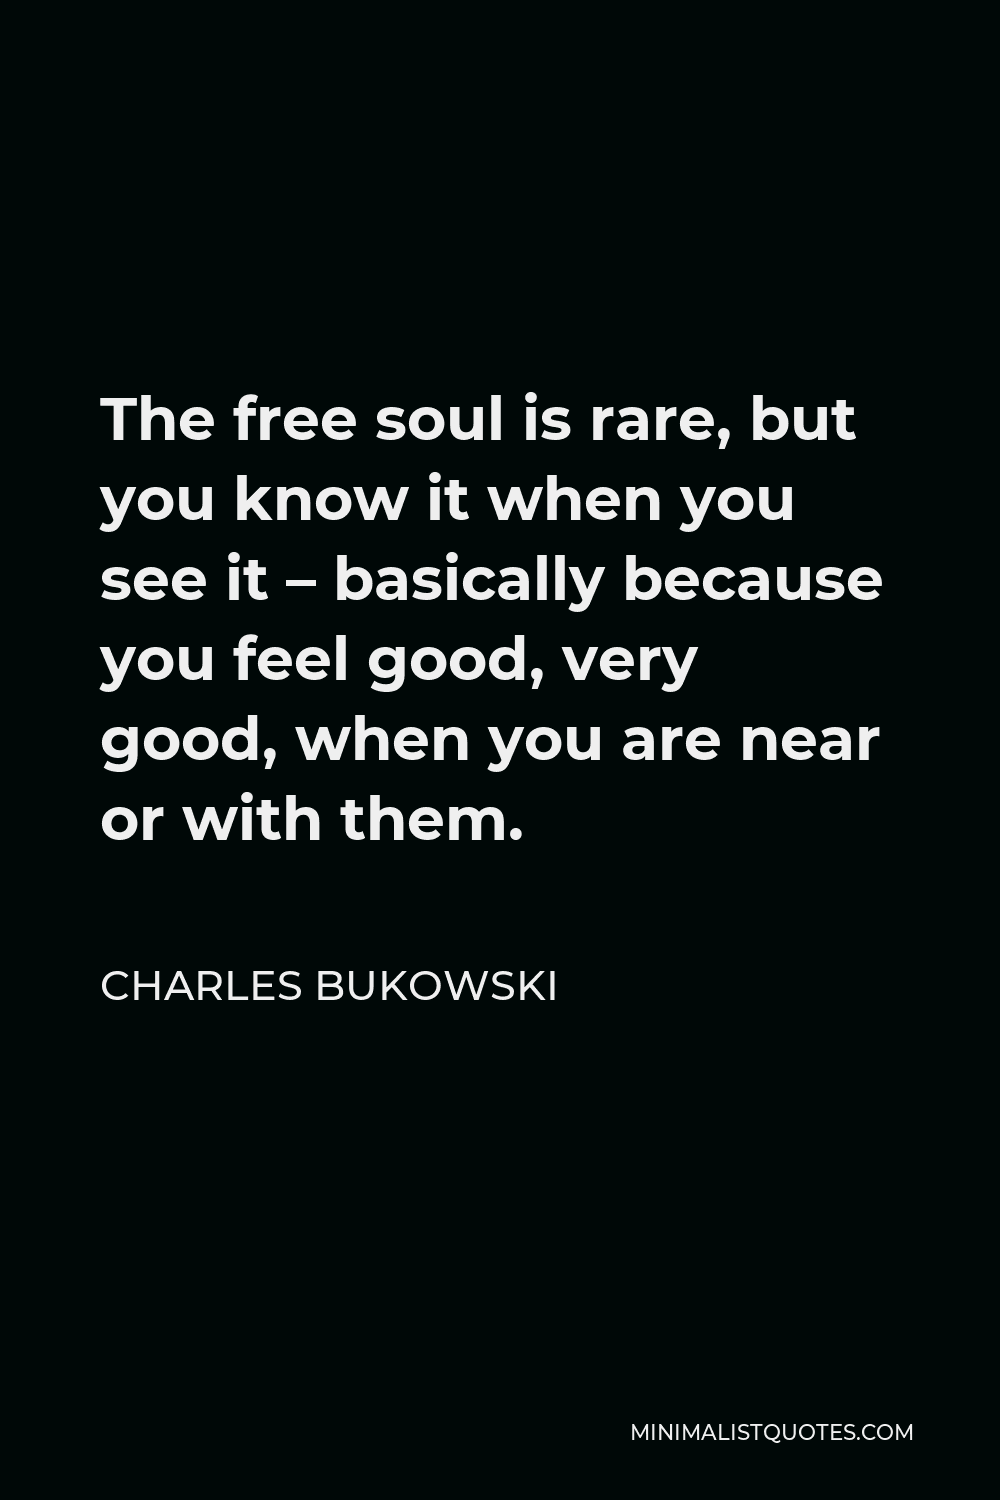 The Free Soul is Rare Charles Bukowski Quote Necklace